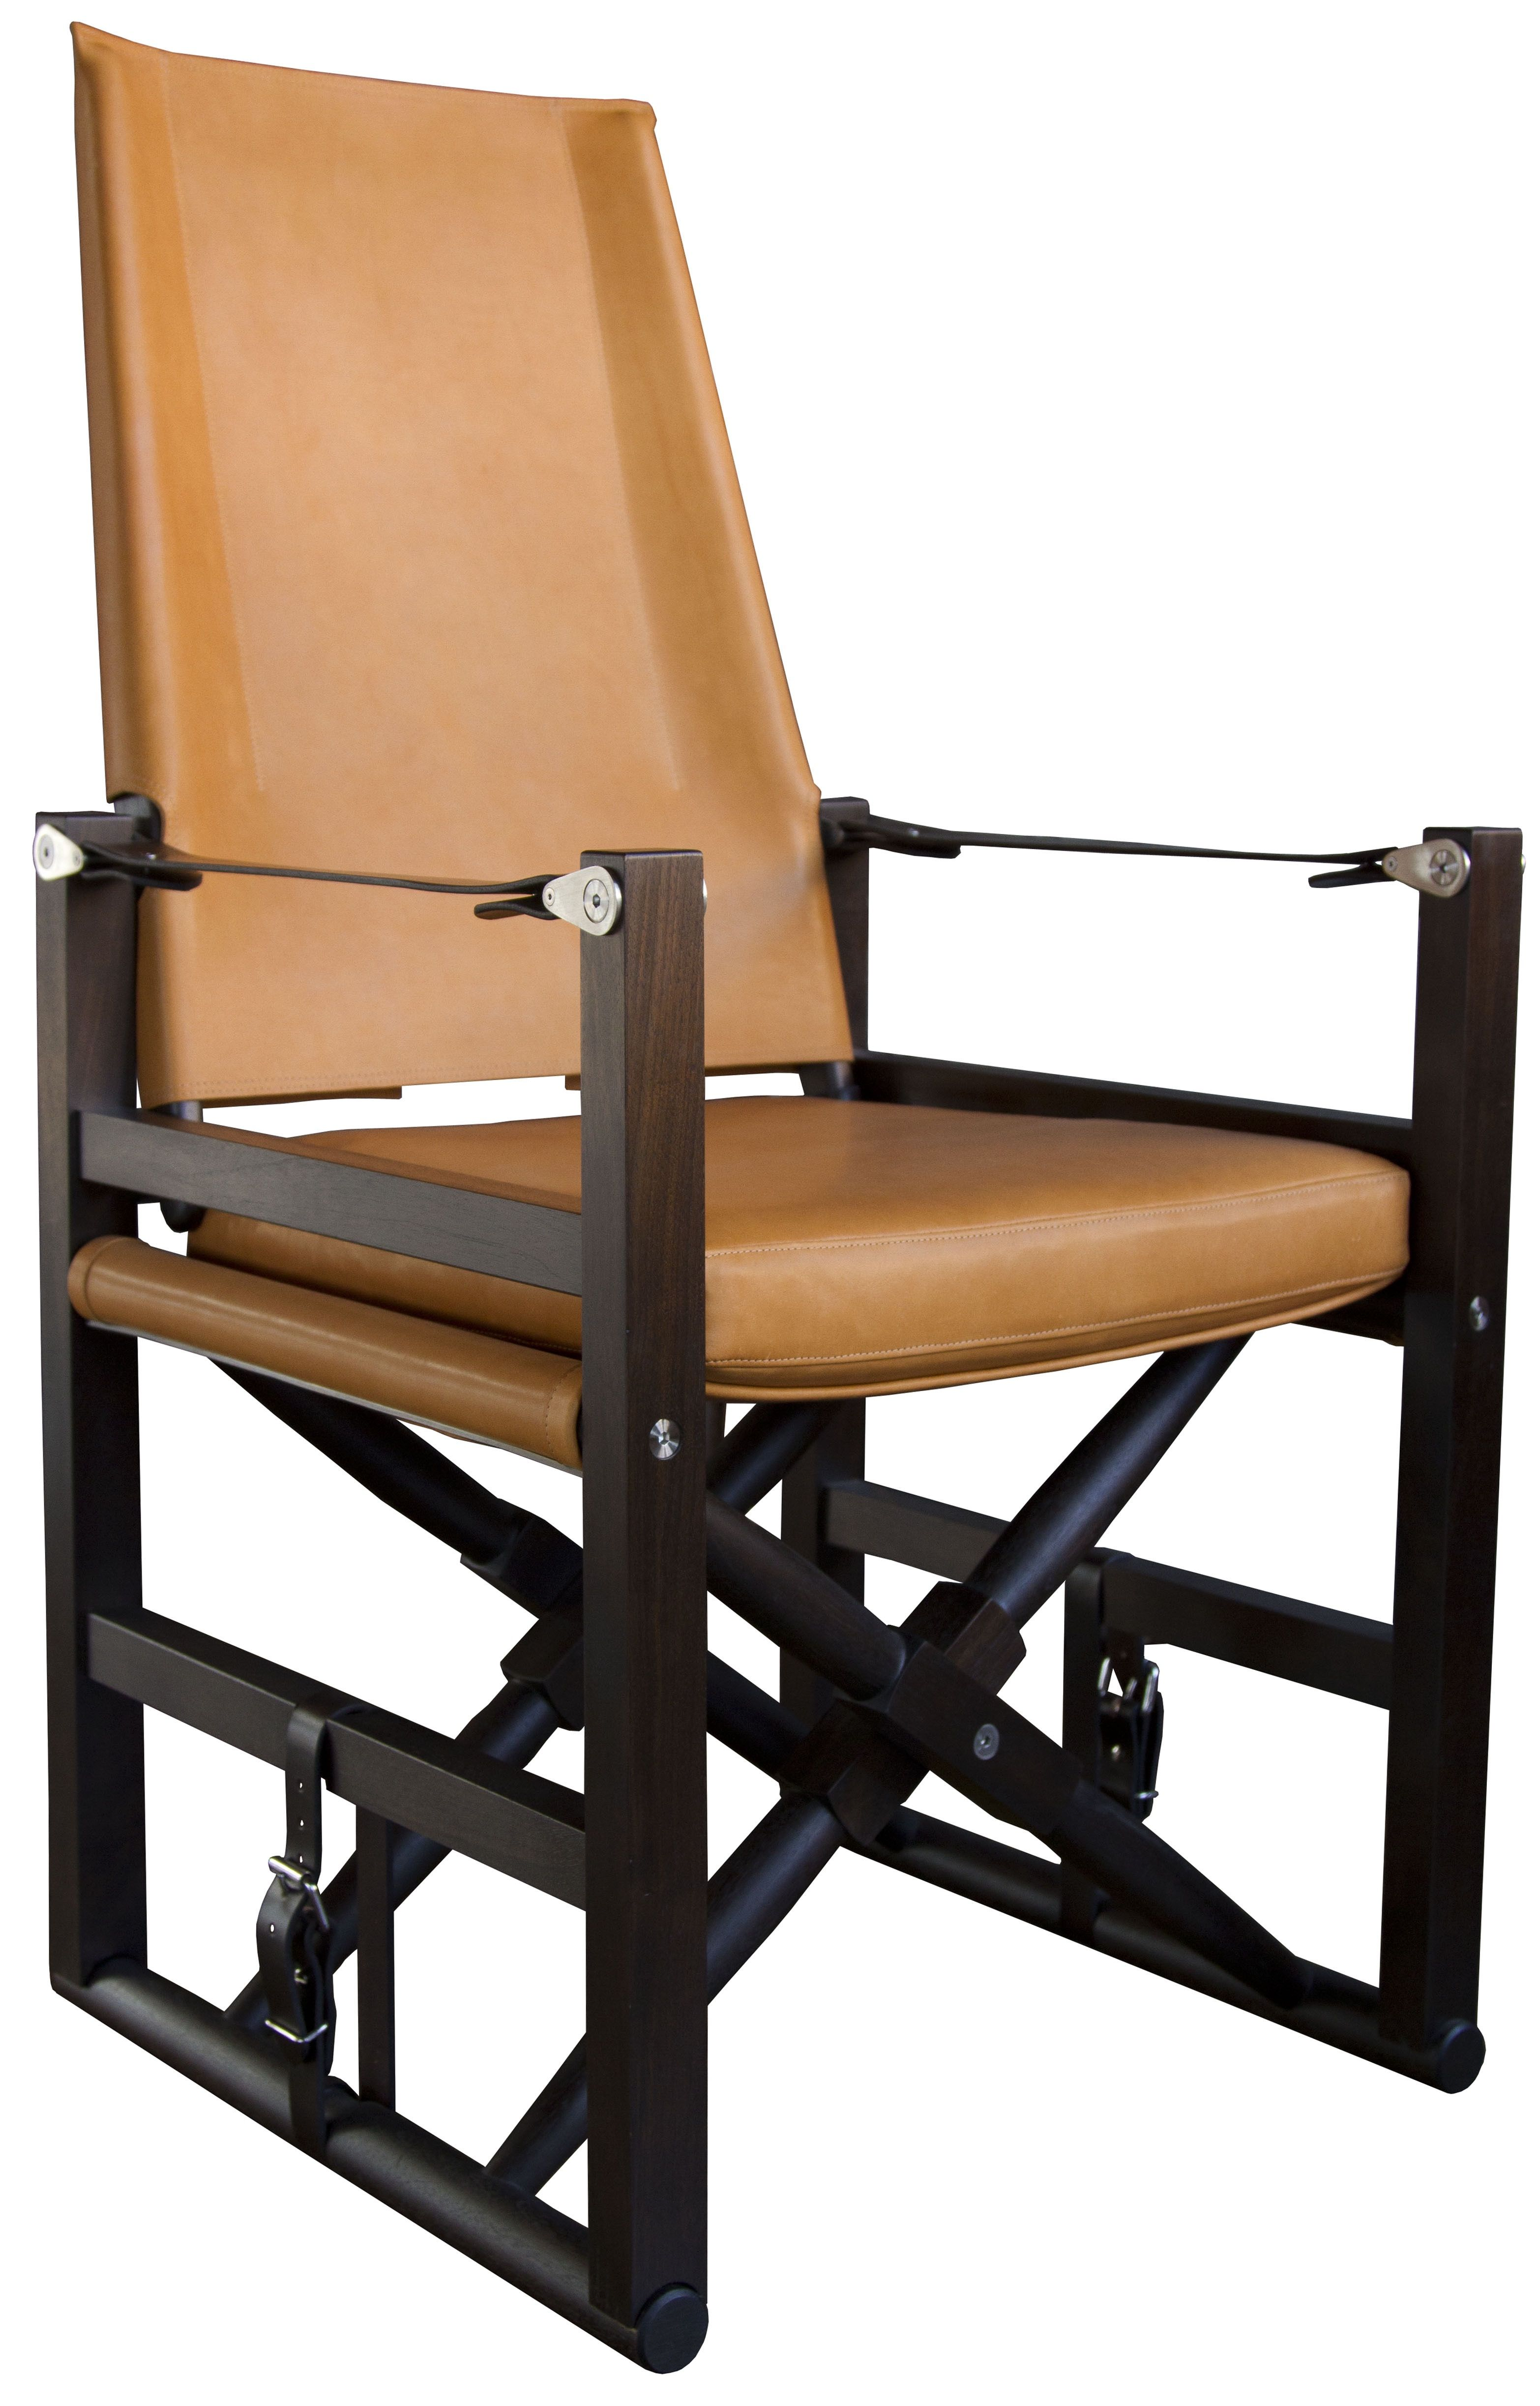 High Back Cabourn Folding Chair in Leather